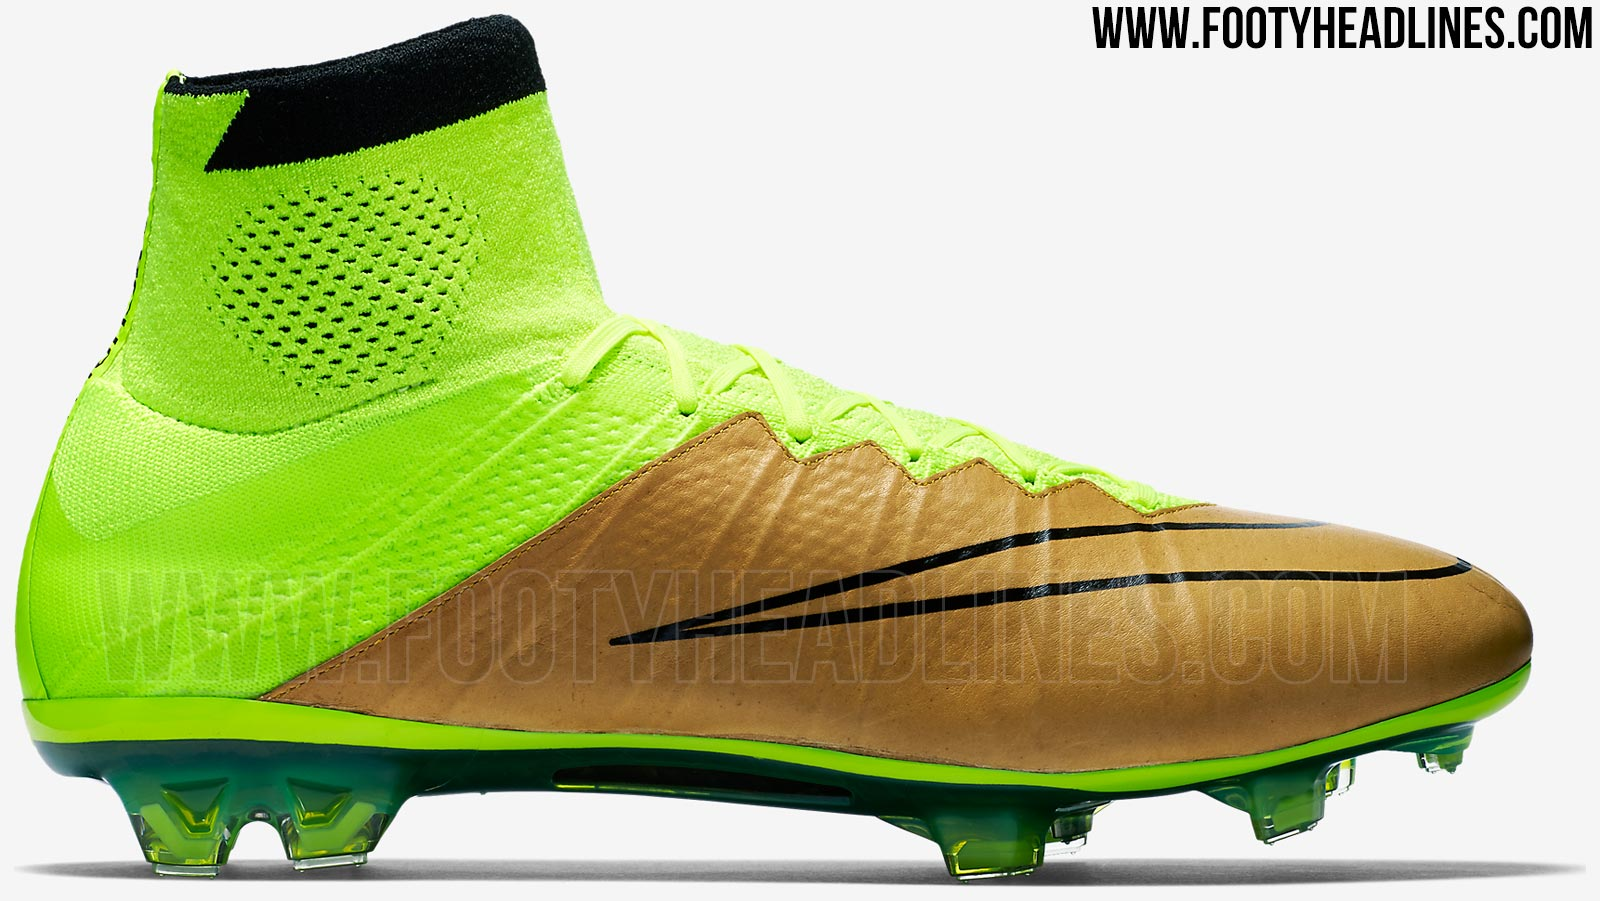 new nike mercurial 2016